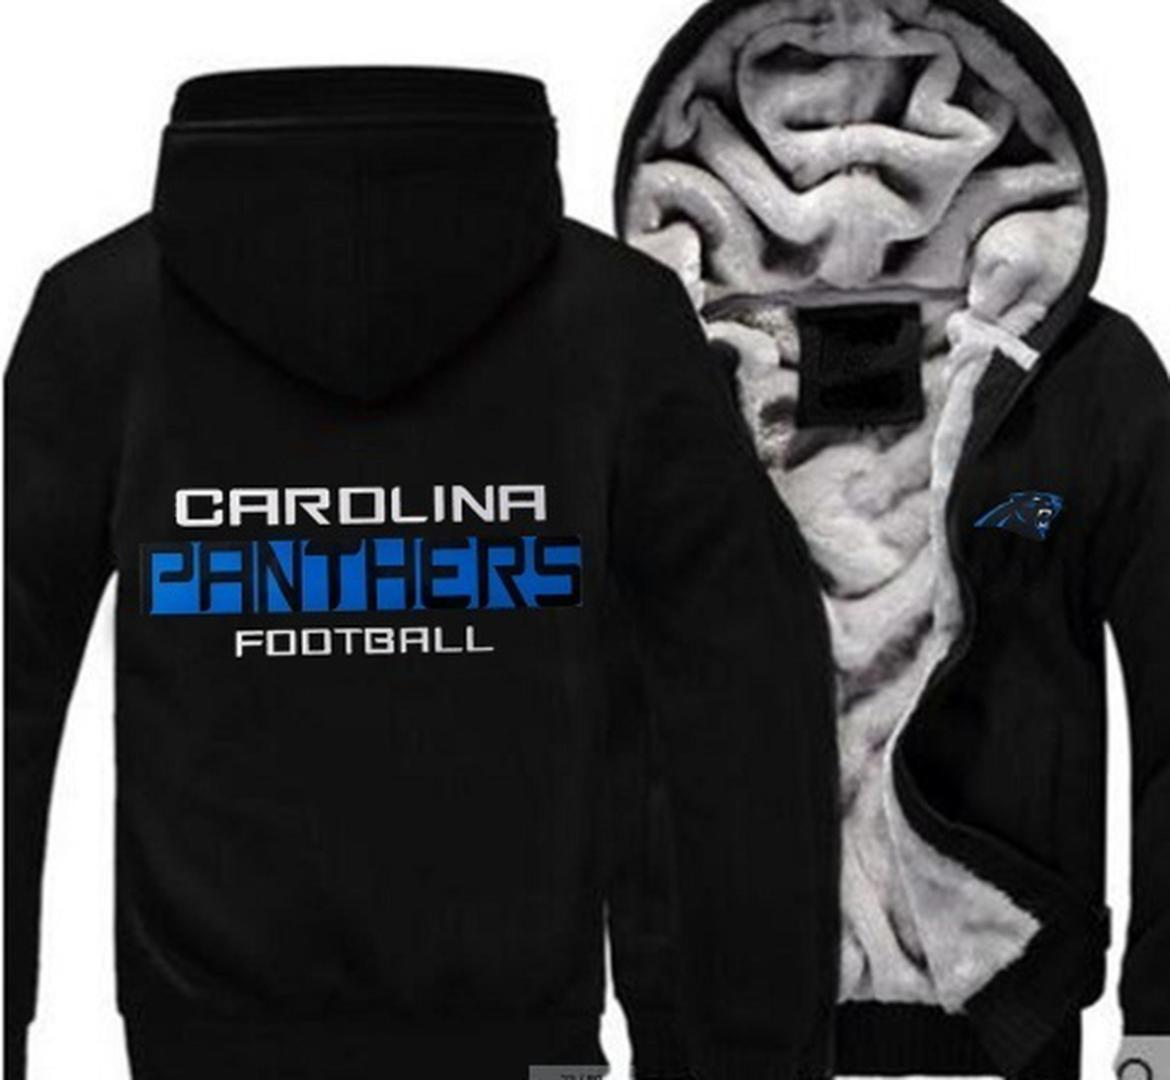 2018 New Carolina Panther Sweatshirt Warm Fleece Thicken Jacket ... 372c05ed8